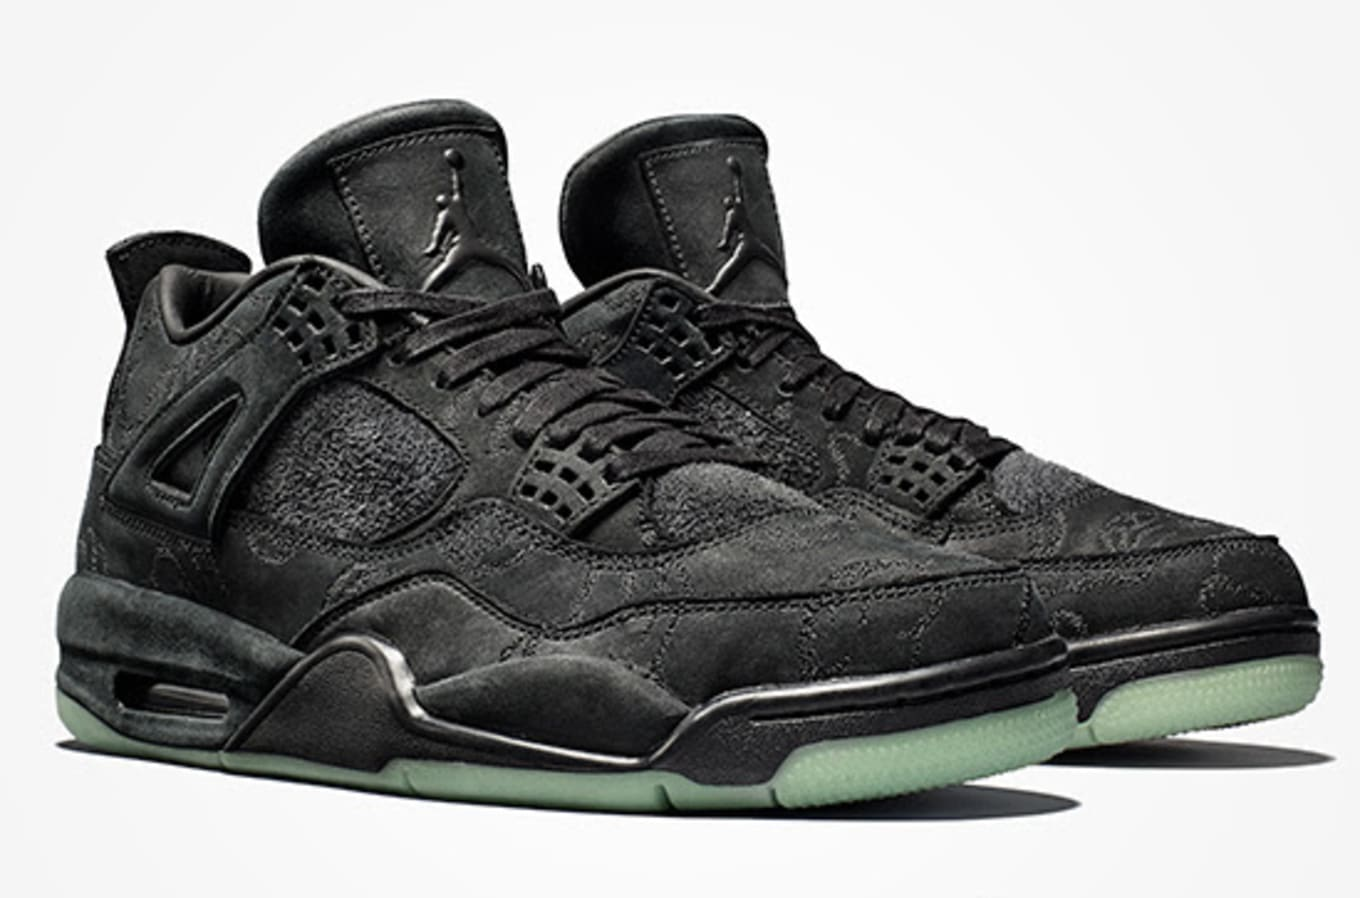 purchase cheap 2c377 9c75a Kaws Air Jordan 4 Black Resell Price | Sole Collector